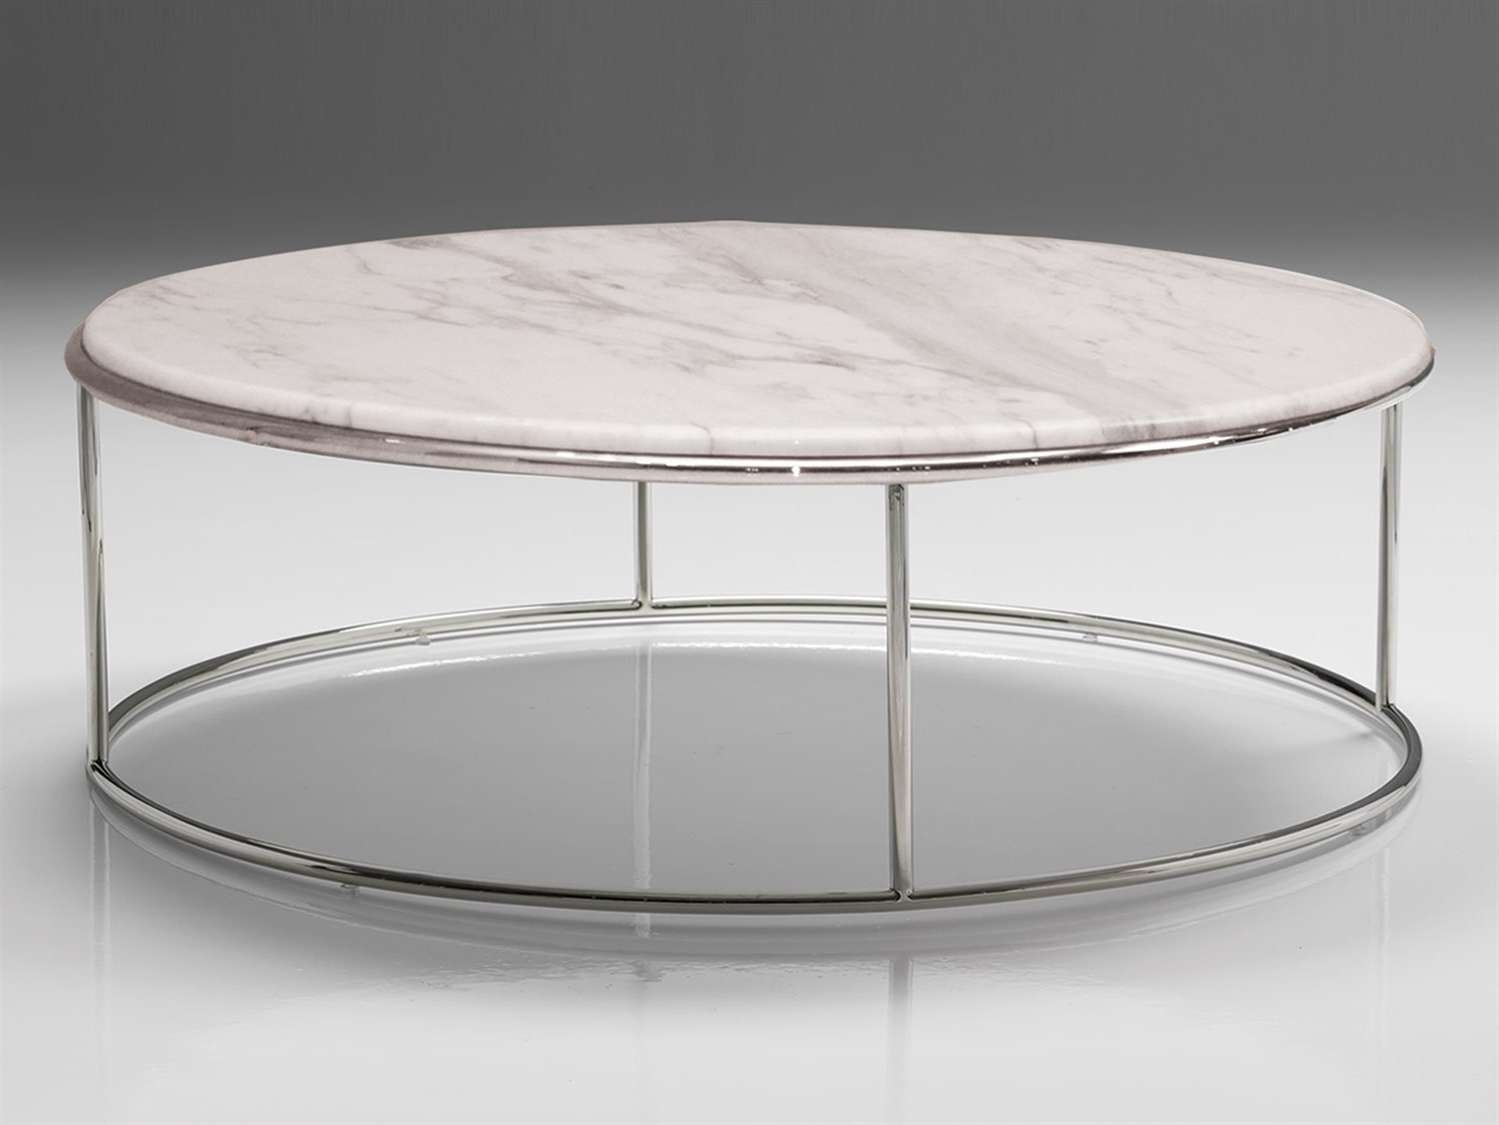 Well Known Marble Round Coffee Tables Intended For Round Marble Coffee Table Canada White Marble Coffee Table For (View 5 of 20)